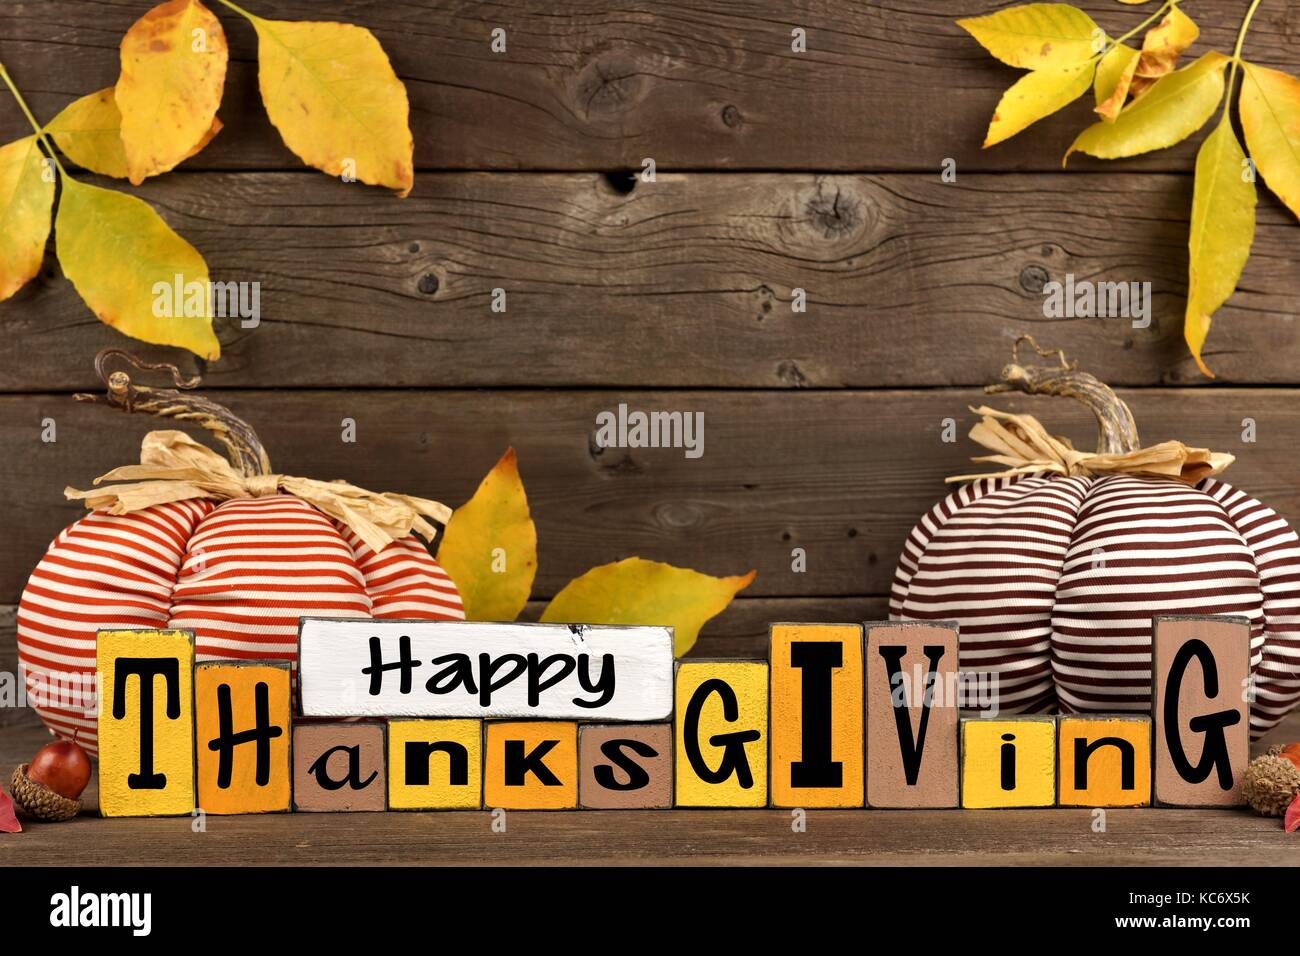 Happy Thanksgiving Wood Sign With Cloth Pumpkins And Leaves Against A Rustic Wooden Background